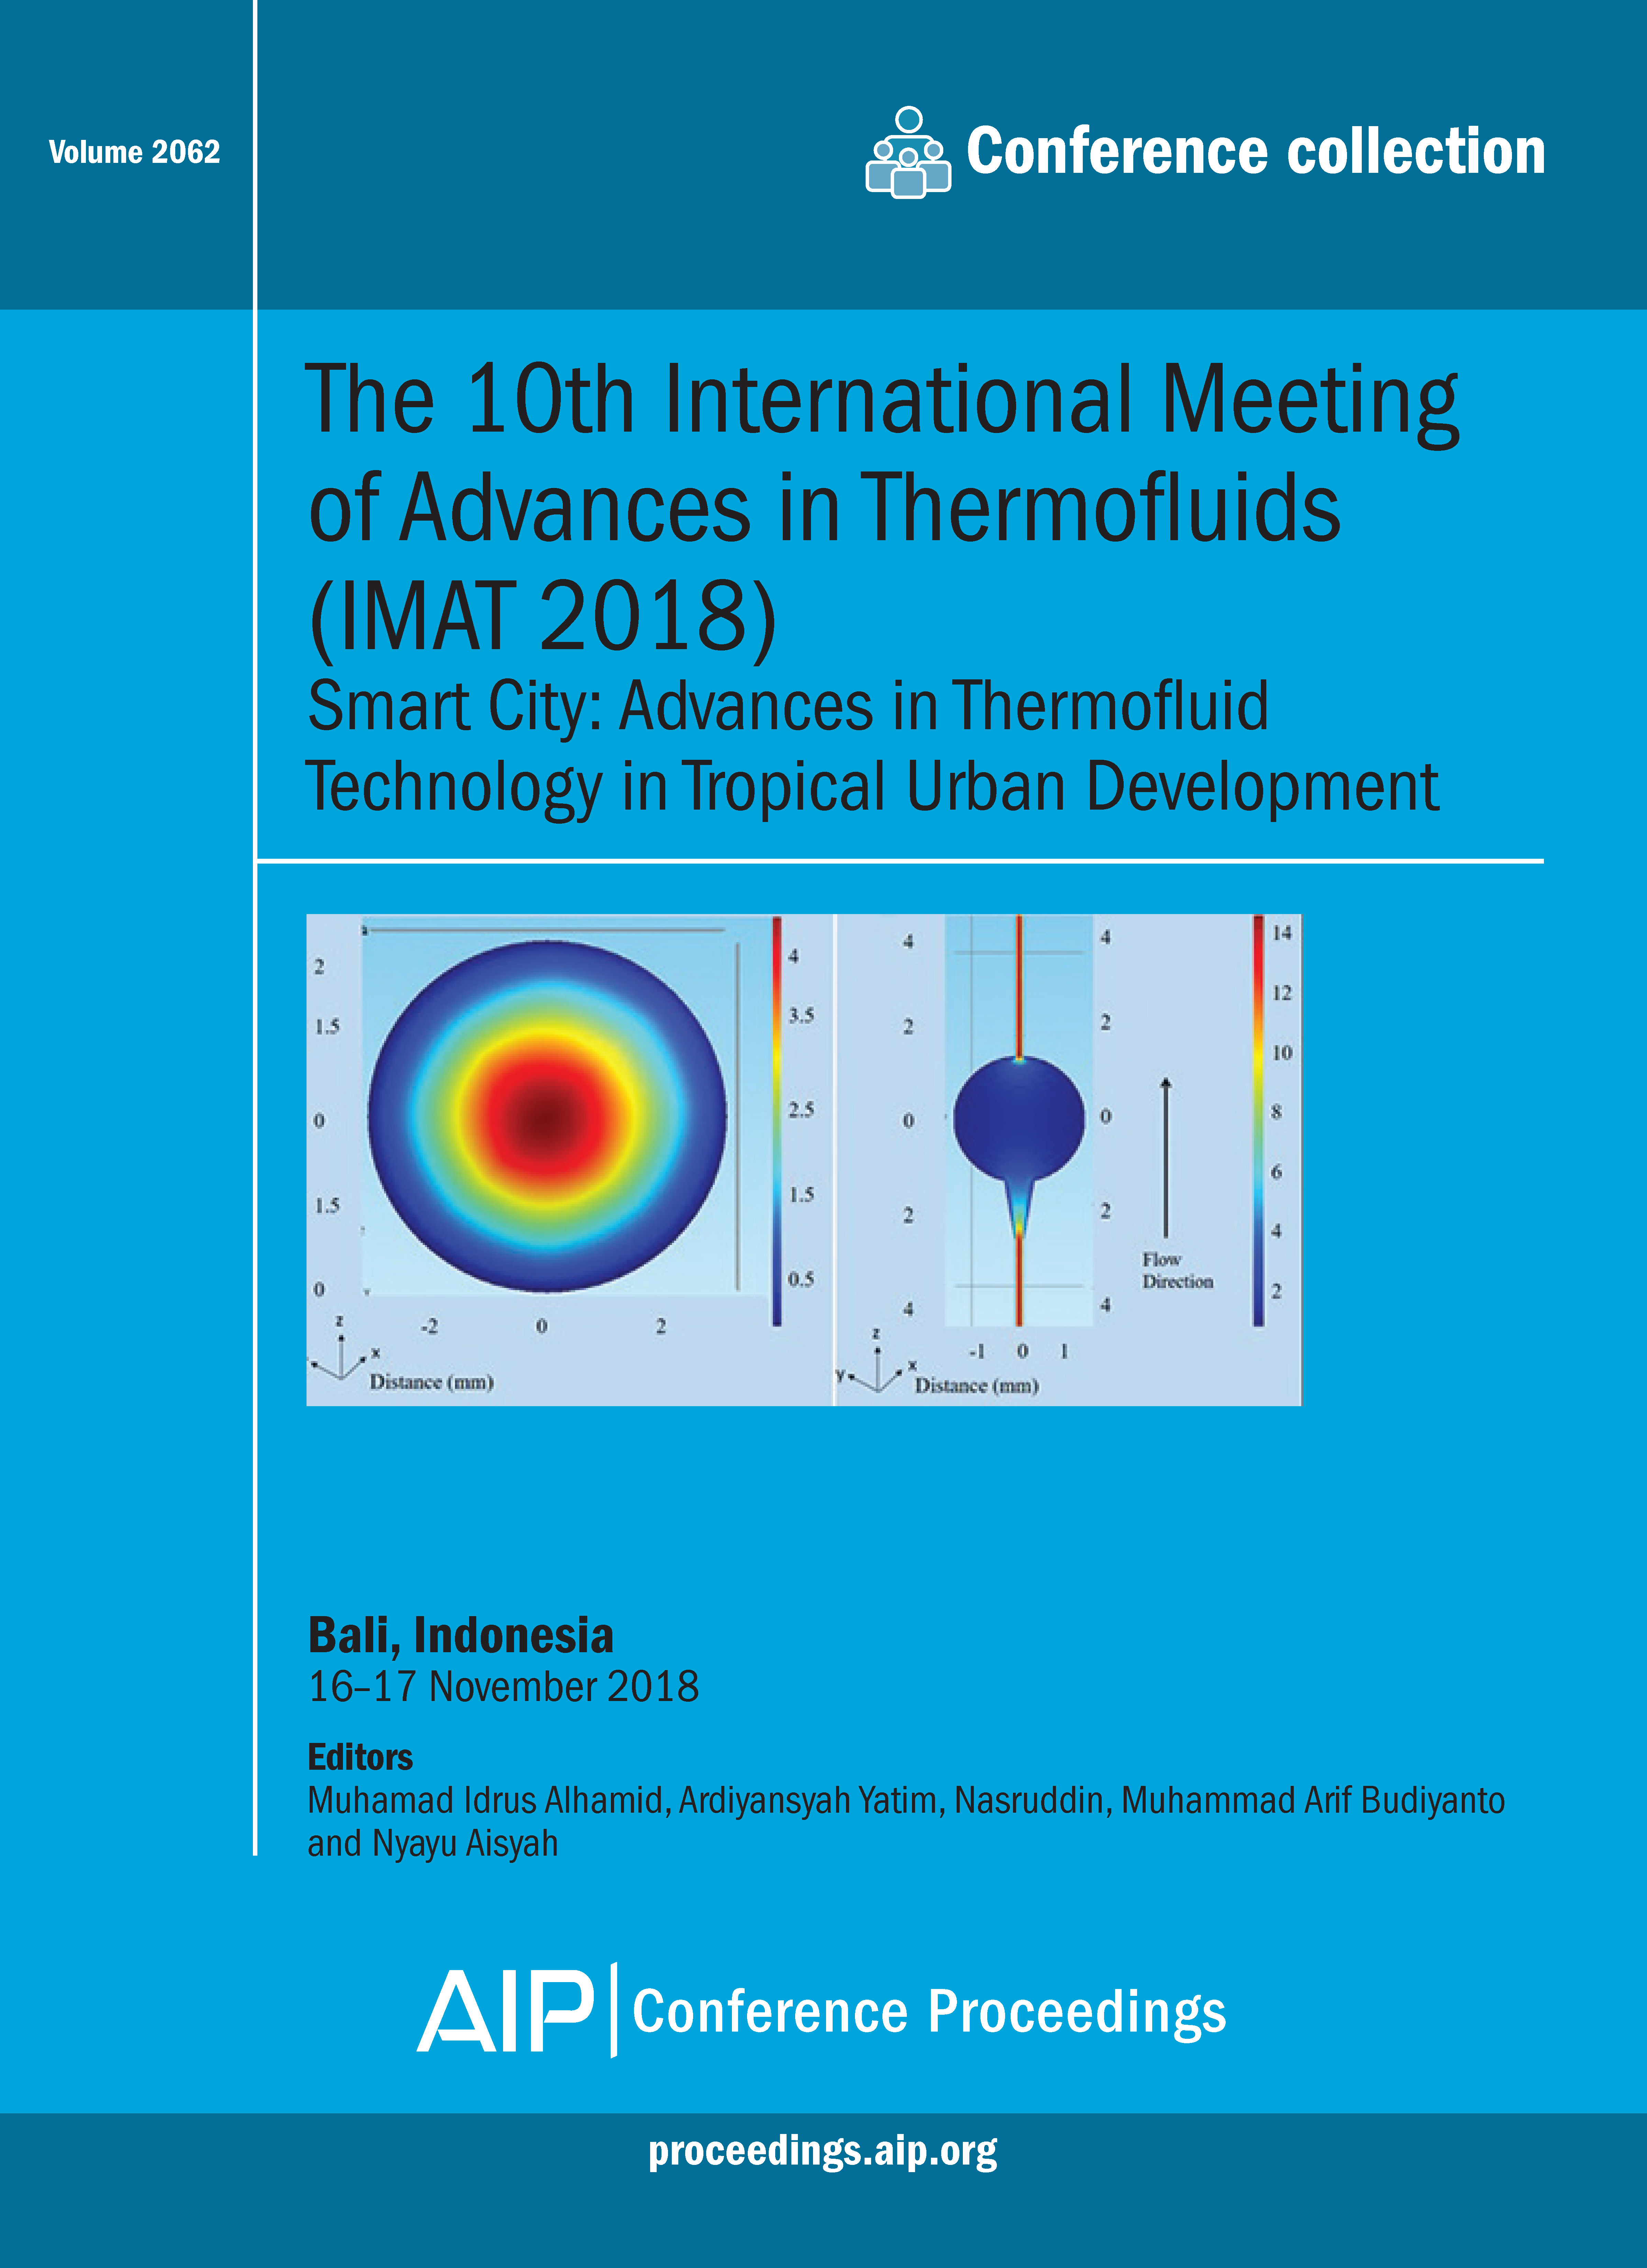 Volume 2062: The 10th International Meeting of Advances in